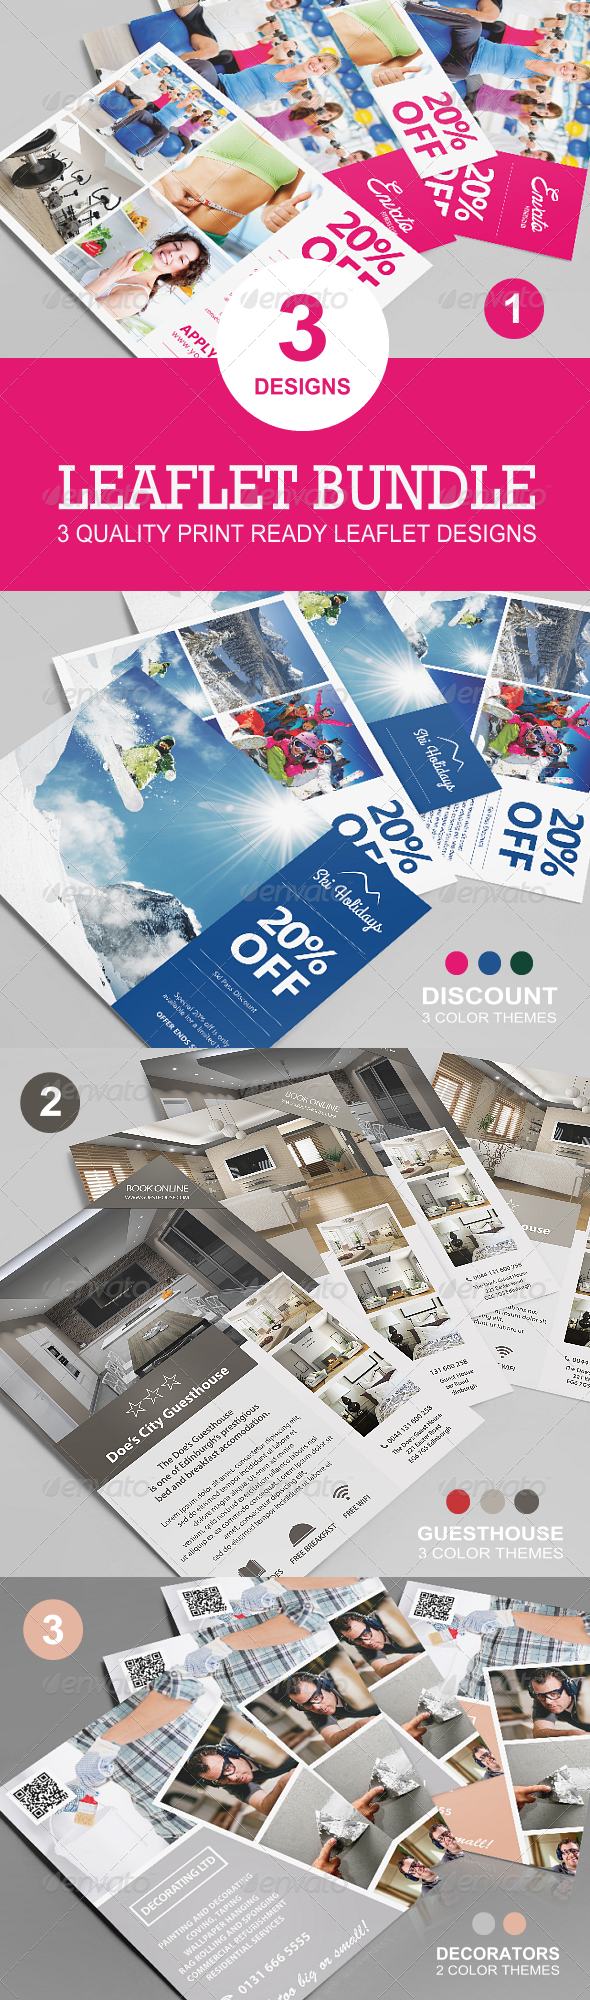 Leaflet Bundle